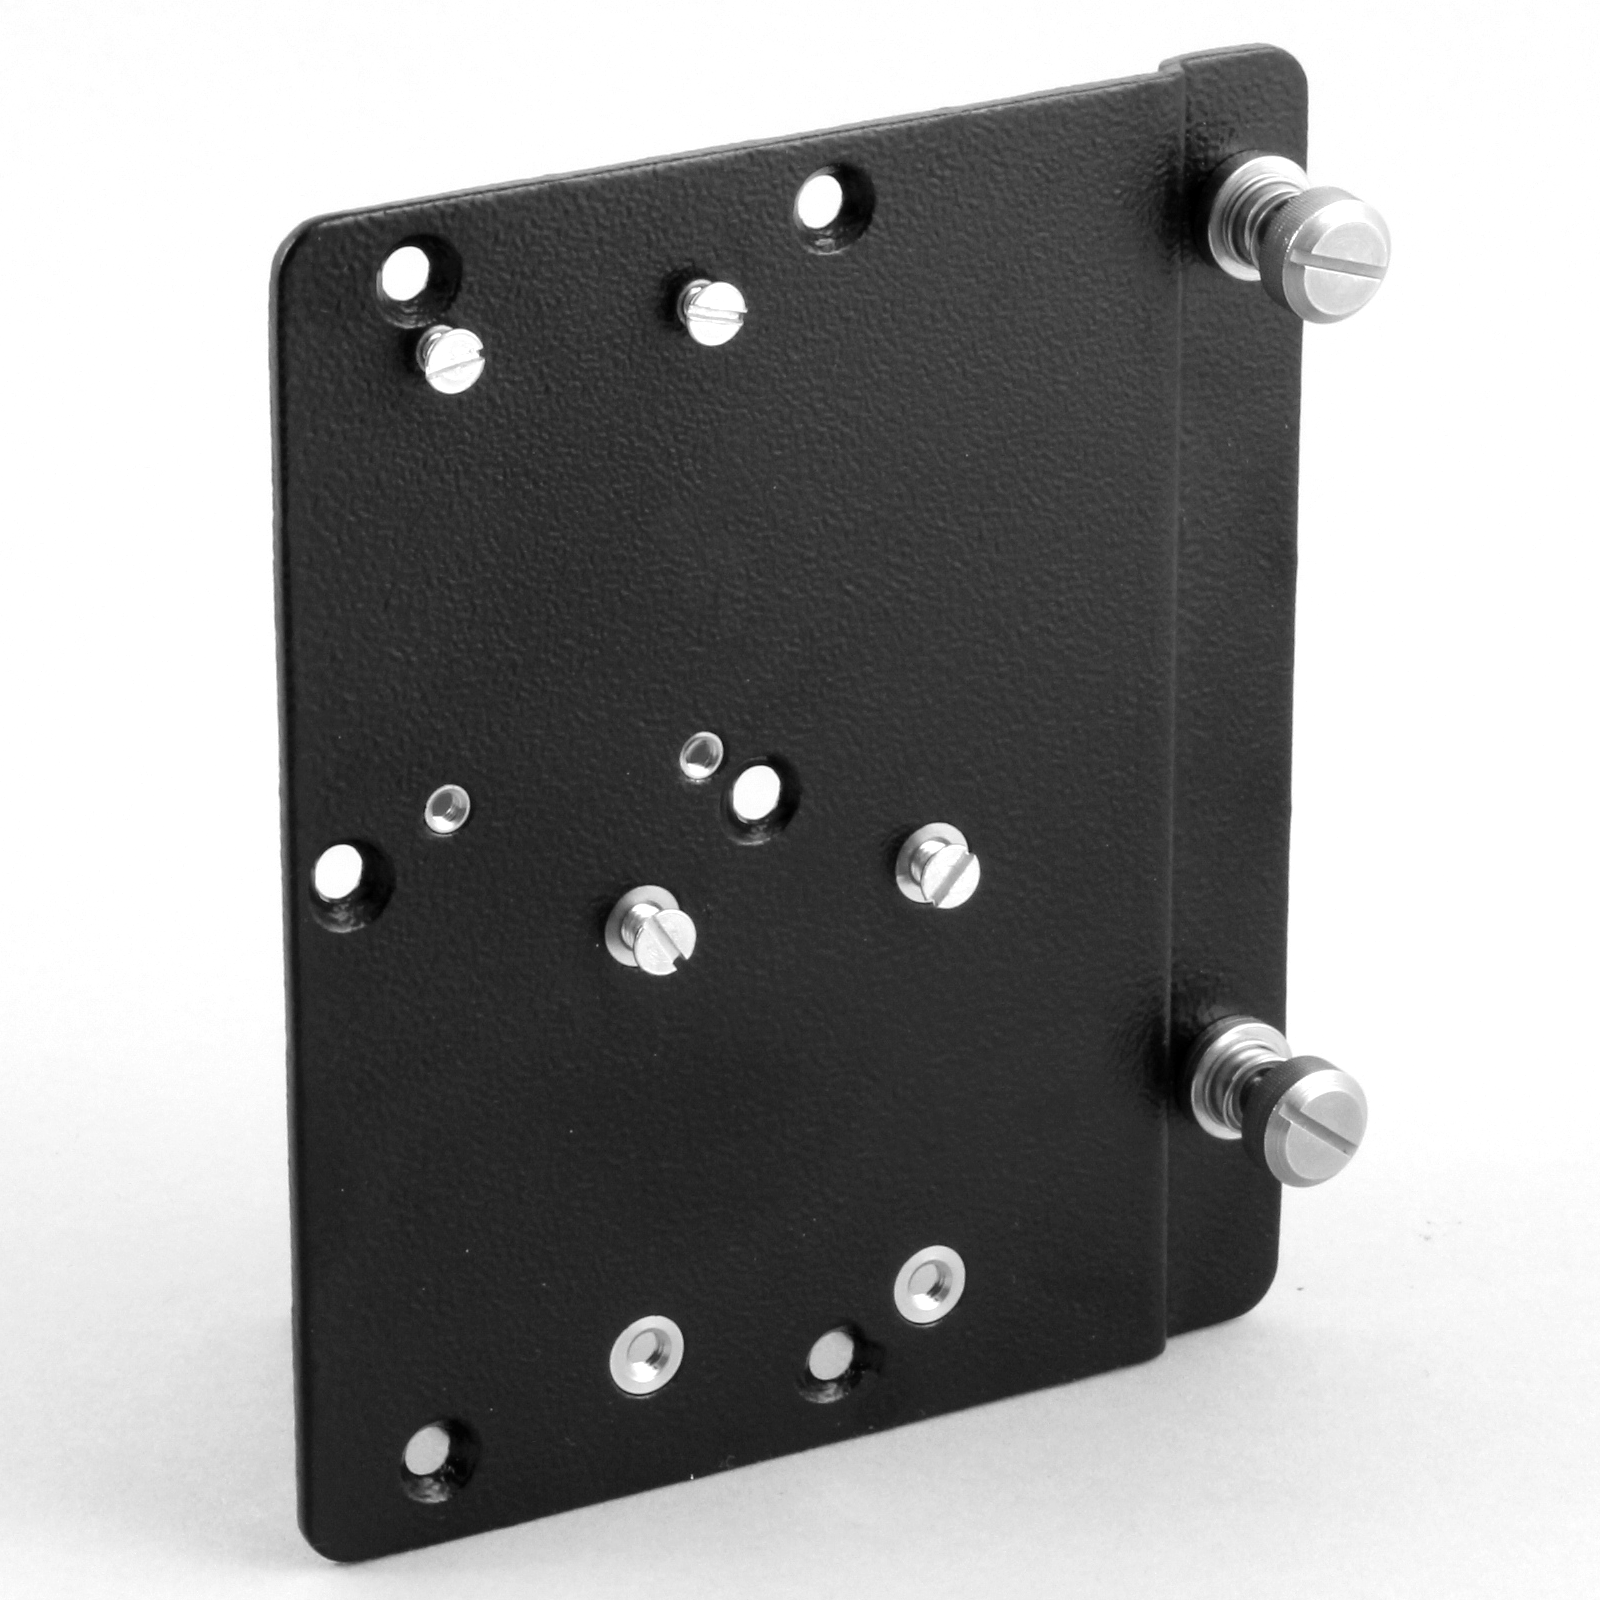 BEC-ABSPU Anton Bauer Style Side Plate